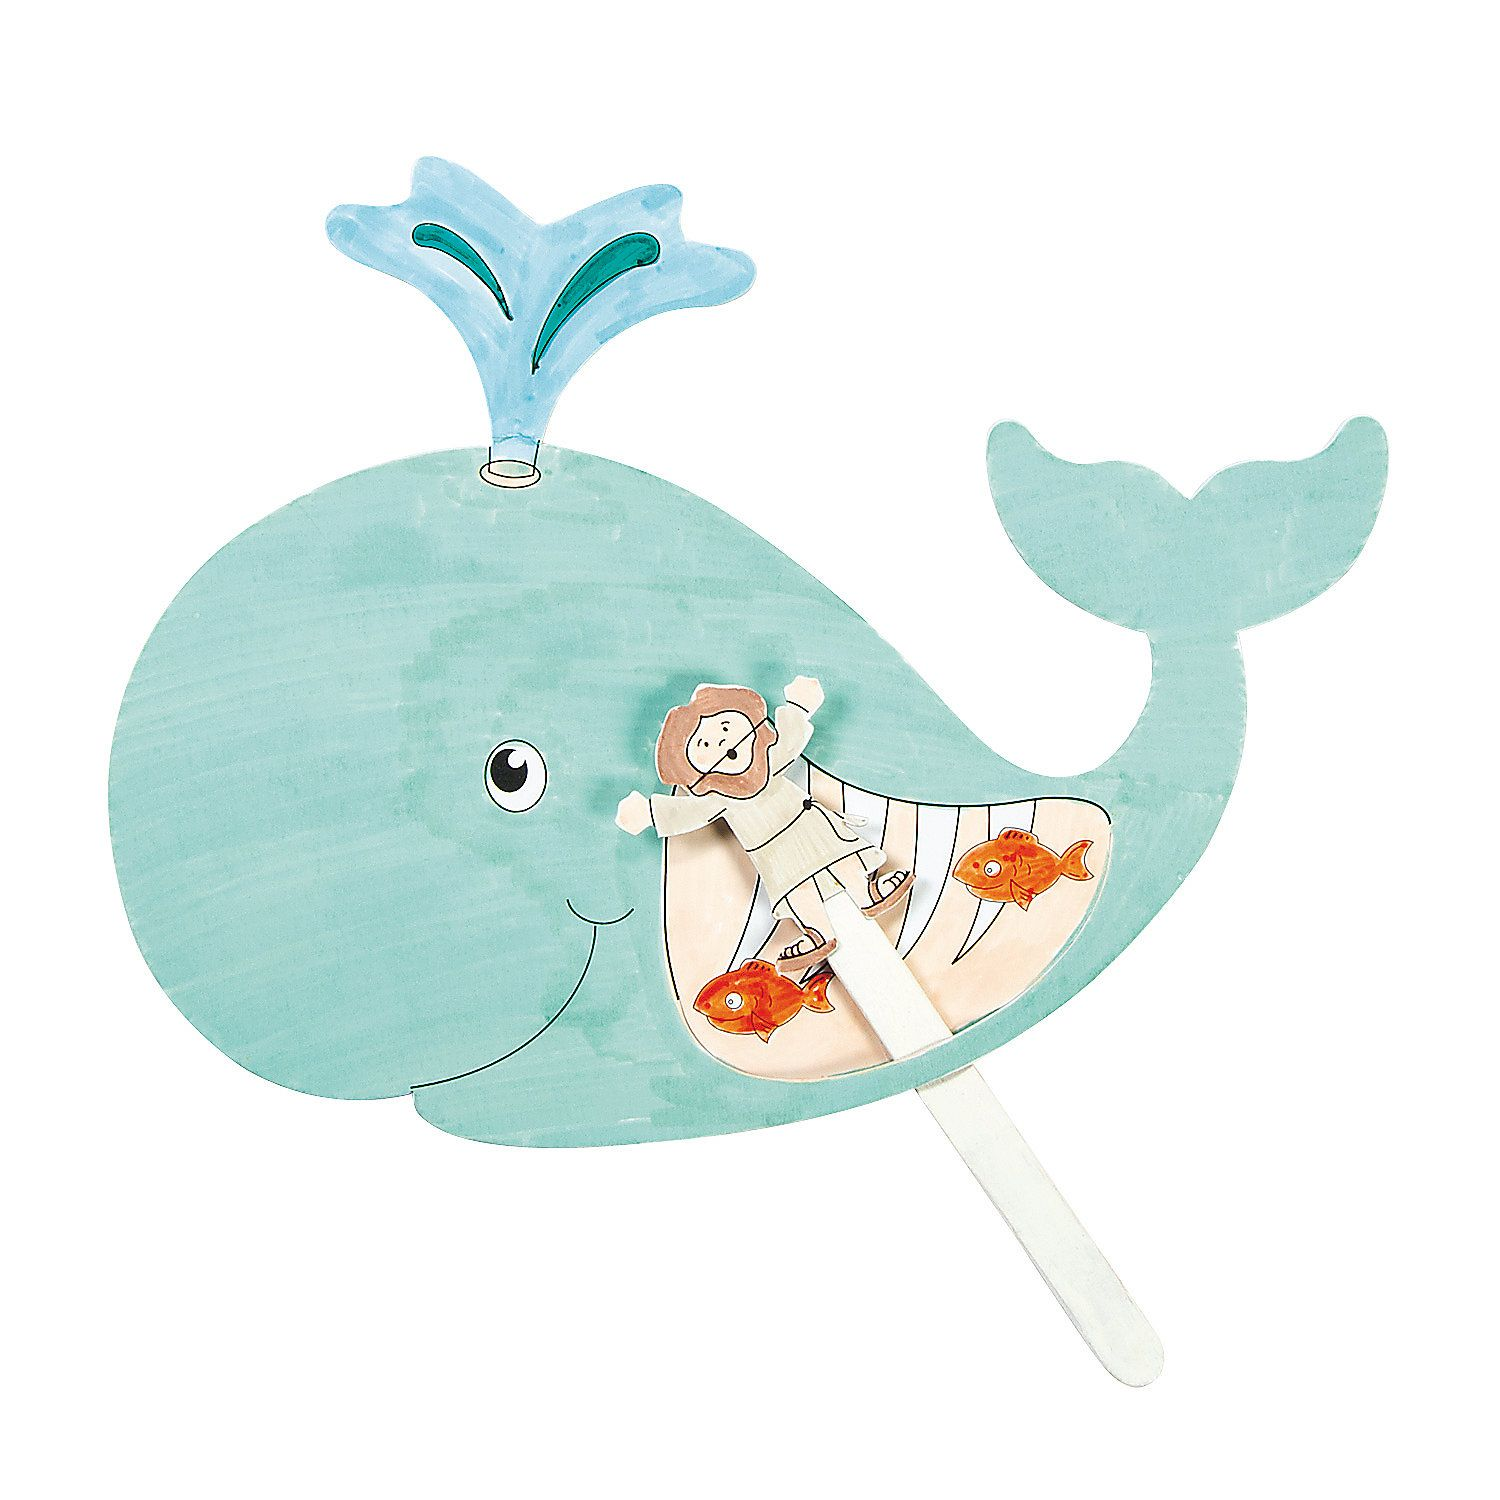 Jonah sunday school craft - Color Your Own Jonah The Whale Craft Kit Orientaltrading Com